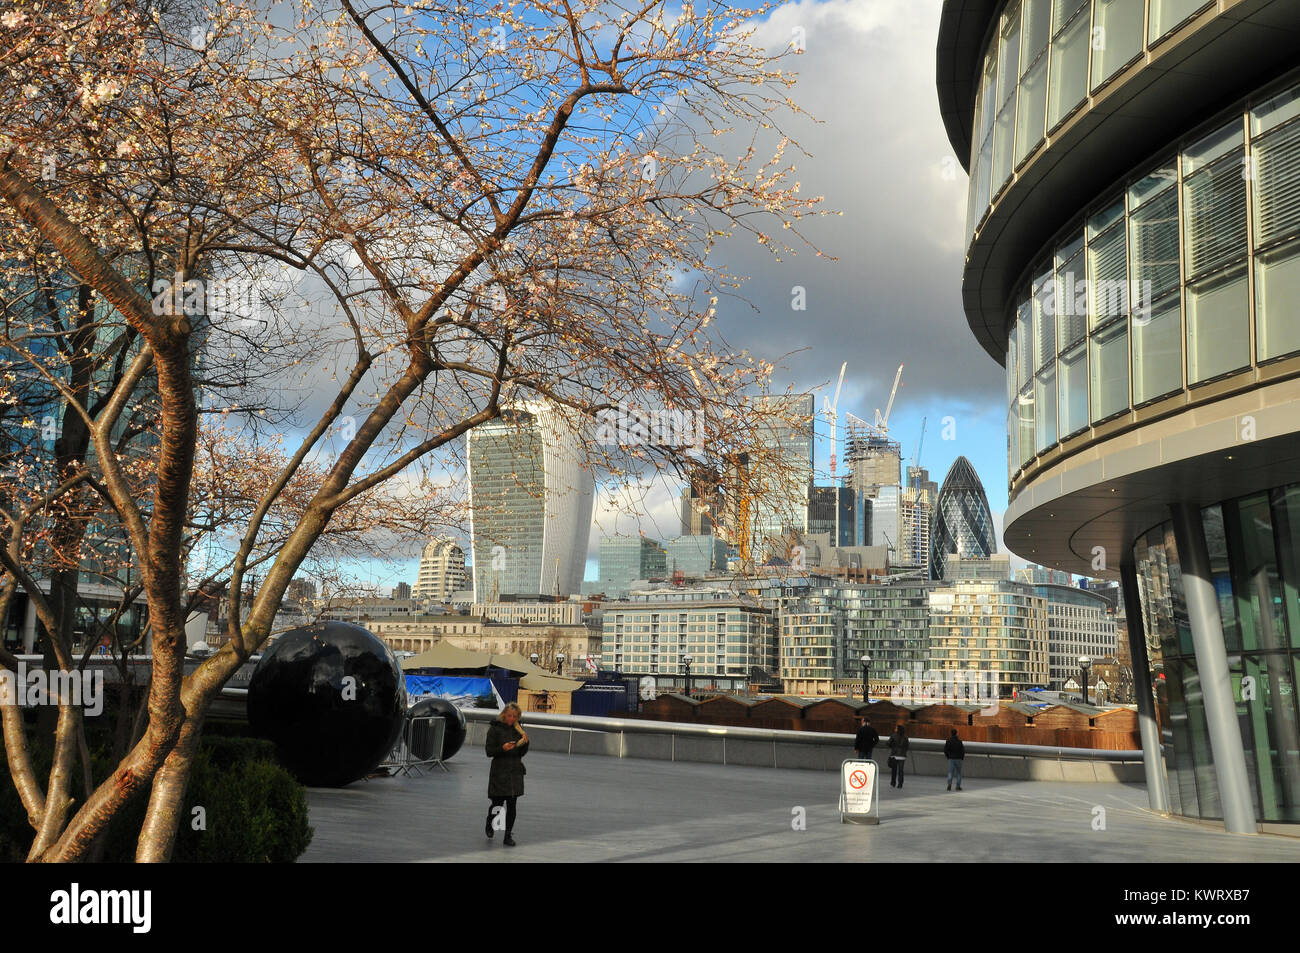 London, UK. 5th January, 2018. Early shows of blossom on the trees next to city hall on the south bank of the river - Stock Image